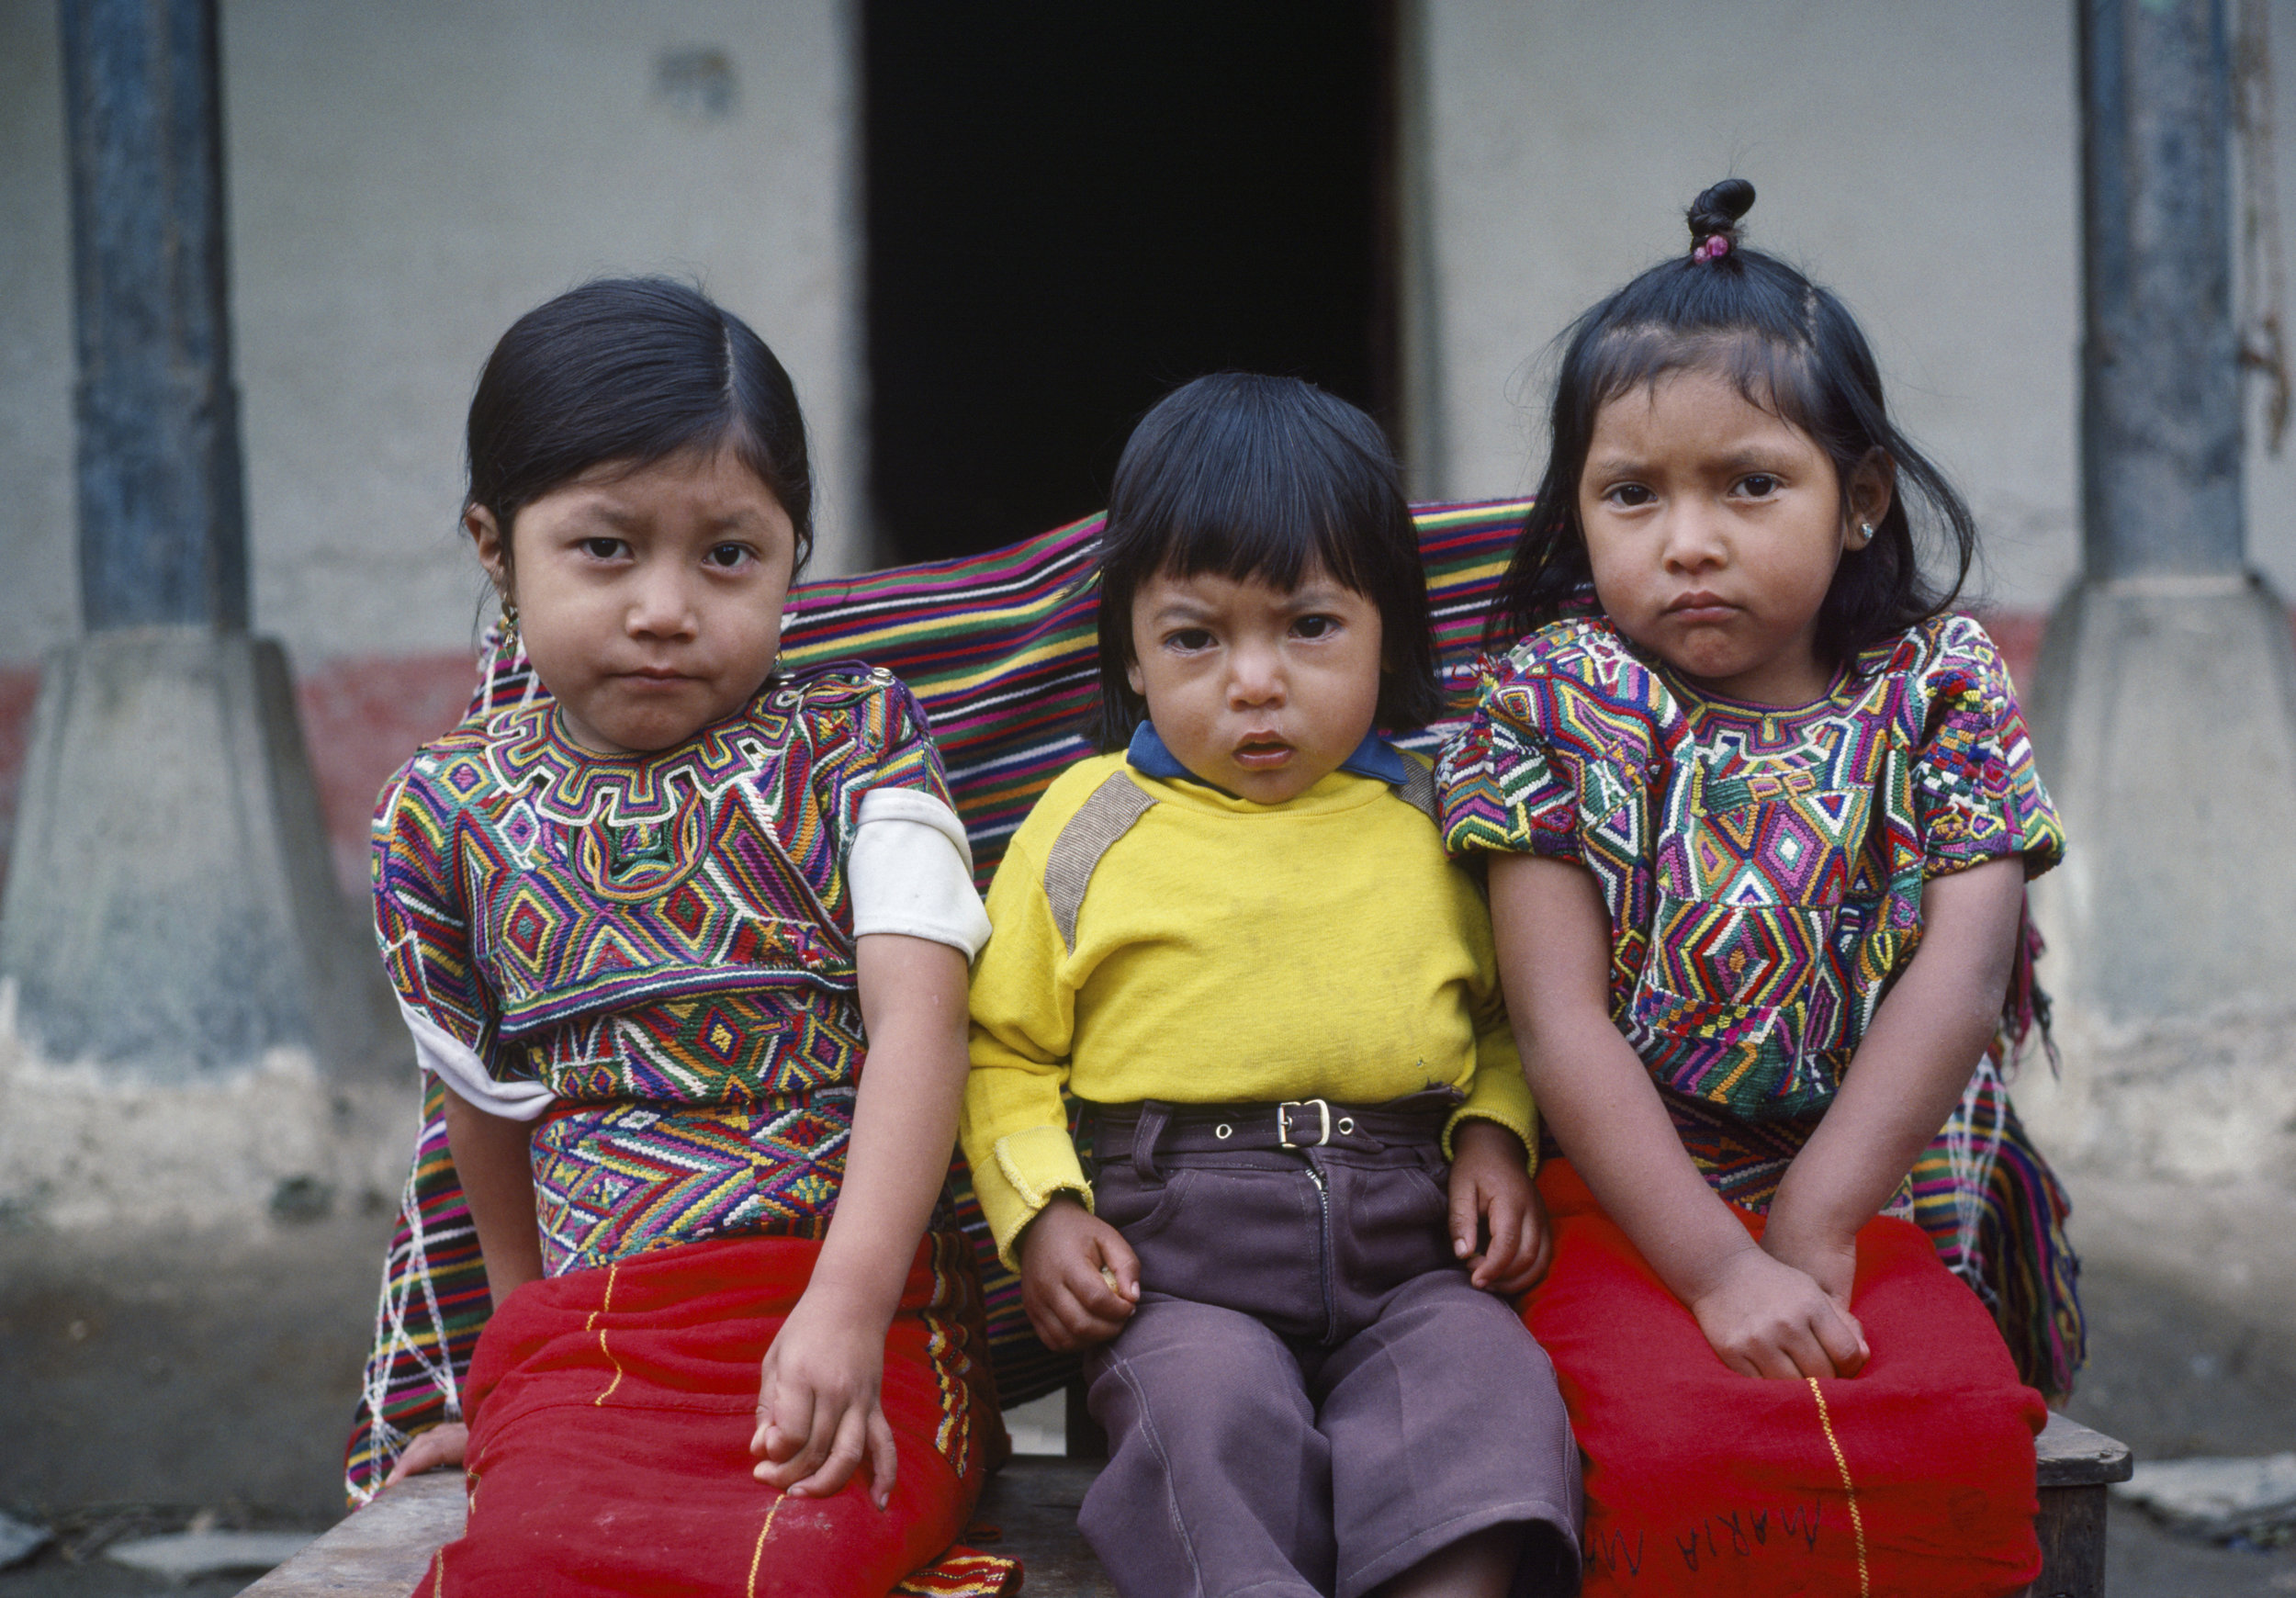 Older sister Cedillo Marcos, 5 years, left, Pedro Cedillo Marcos, center, 2 years, Marcelina Cedillo Marcos, right, 4 years, sit for a photograph in the Pensíon Ardavin in Nebaj, Guatemala on January 1, 1984. Marcelina Cedillo Marcos grew up to be a schoolteacher and witnessed frequent armed violence of the civil war in the Ixil Maya region.